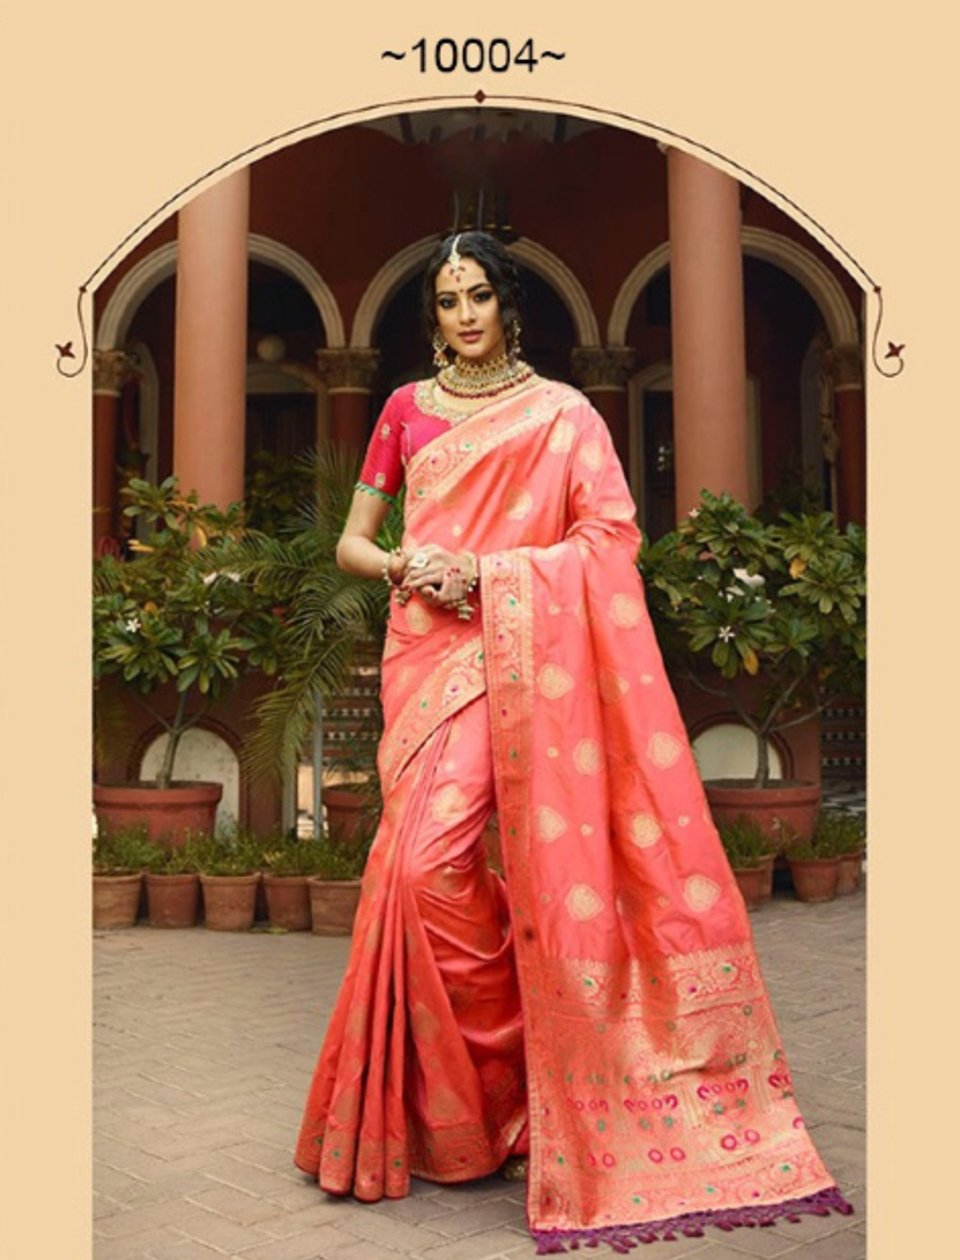 Amazing VRI10004 Bridal Peach Pink Silk Saree - Fashion Nation.in